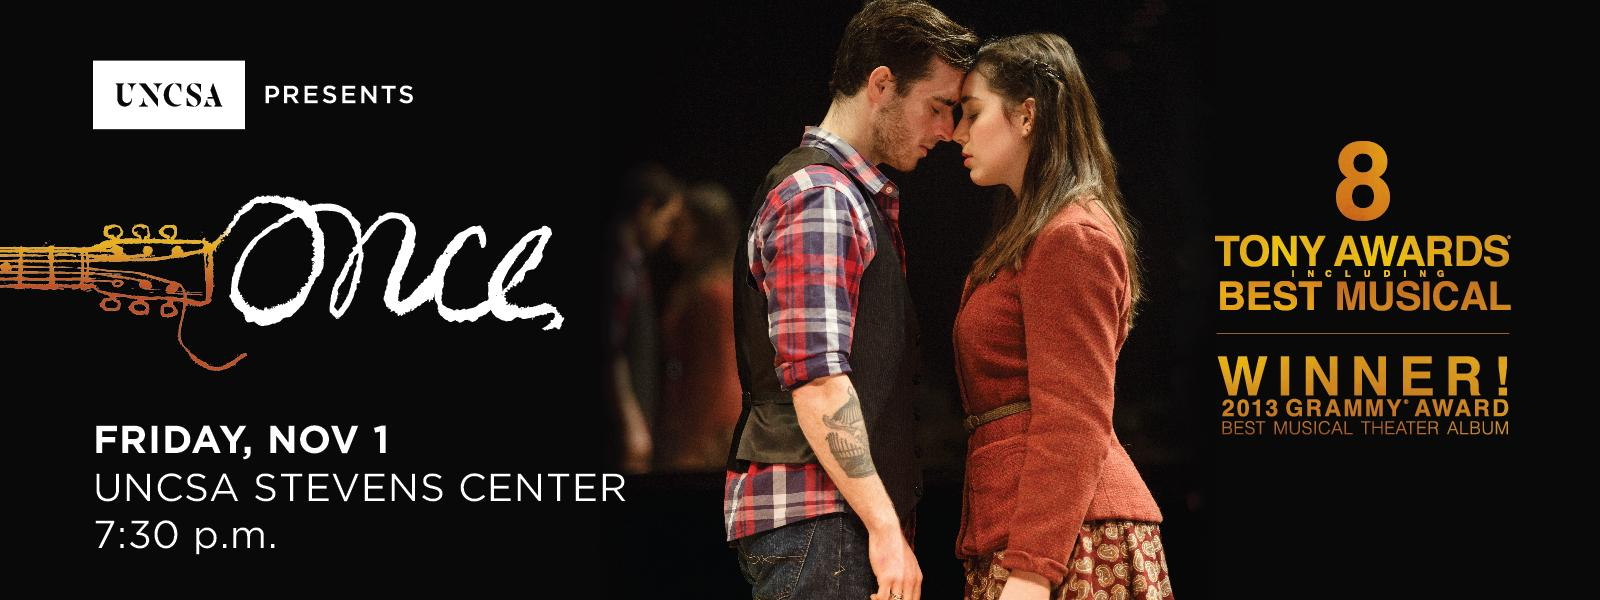 "Broadway in Winston brings us ""Once"": an unforgettable love story set to music.>>BUY TICKETS"